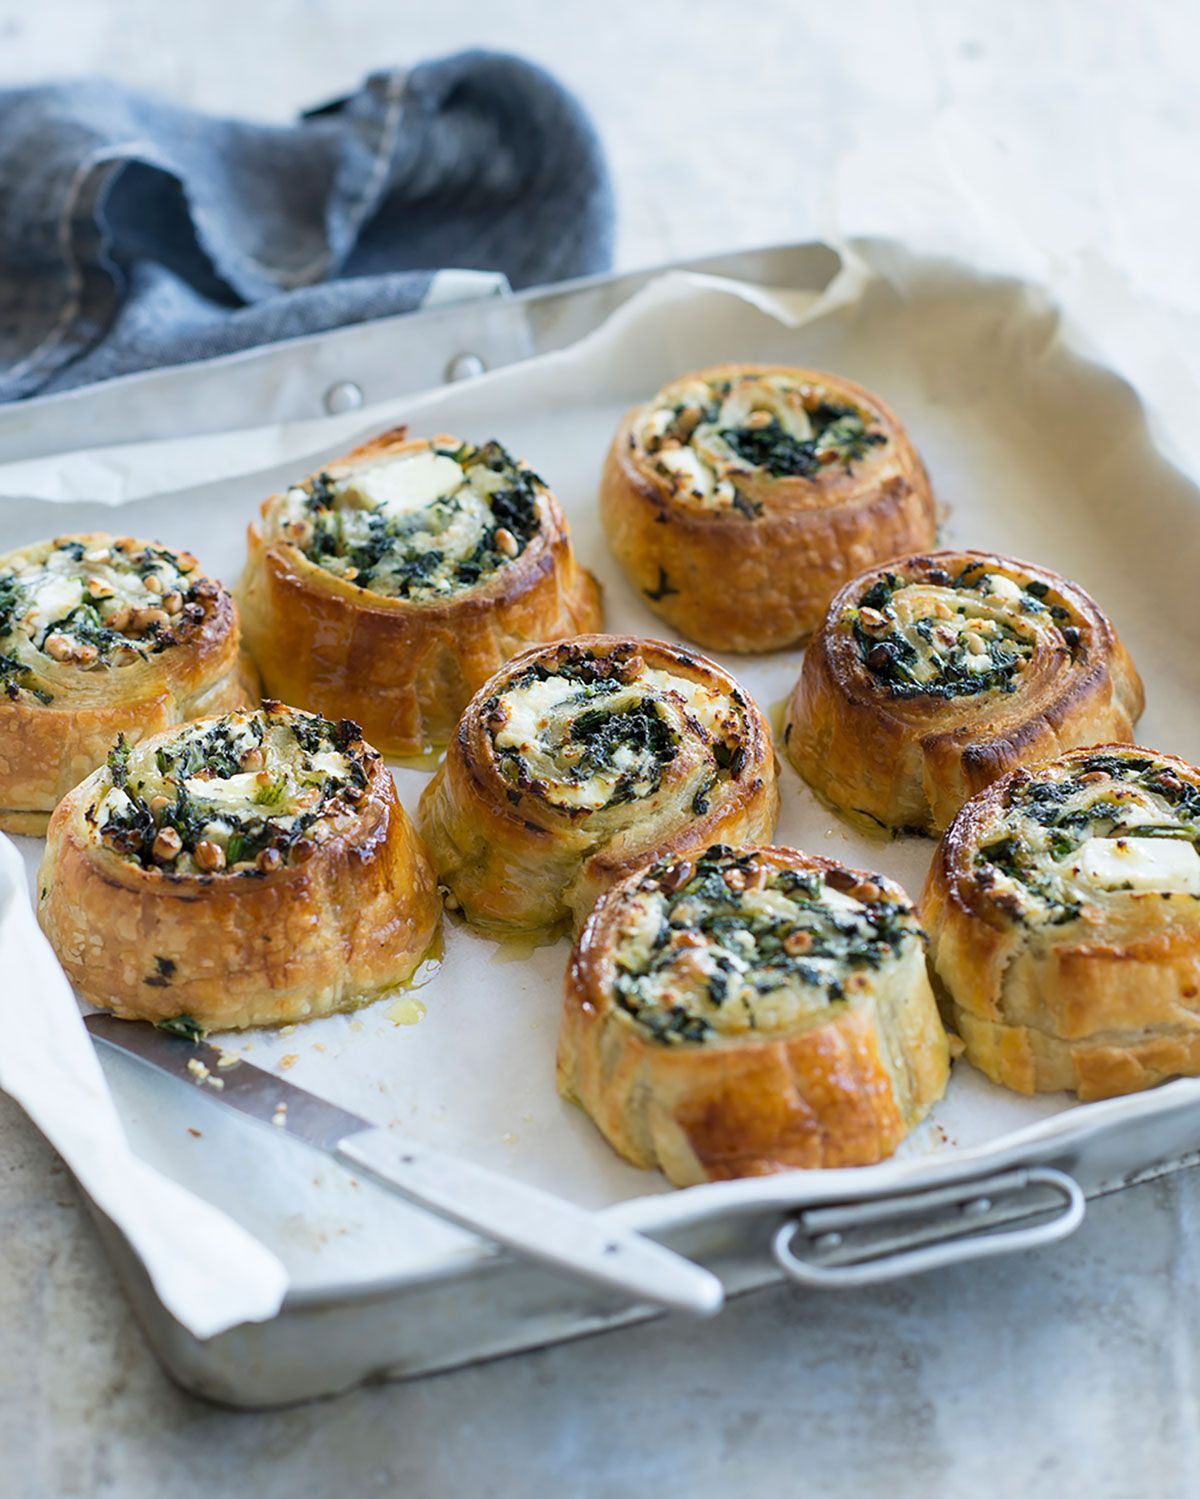 Spinach And Pine Nut Rolls: When I Was Growing Up, These Vegetable Rolls Were Another